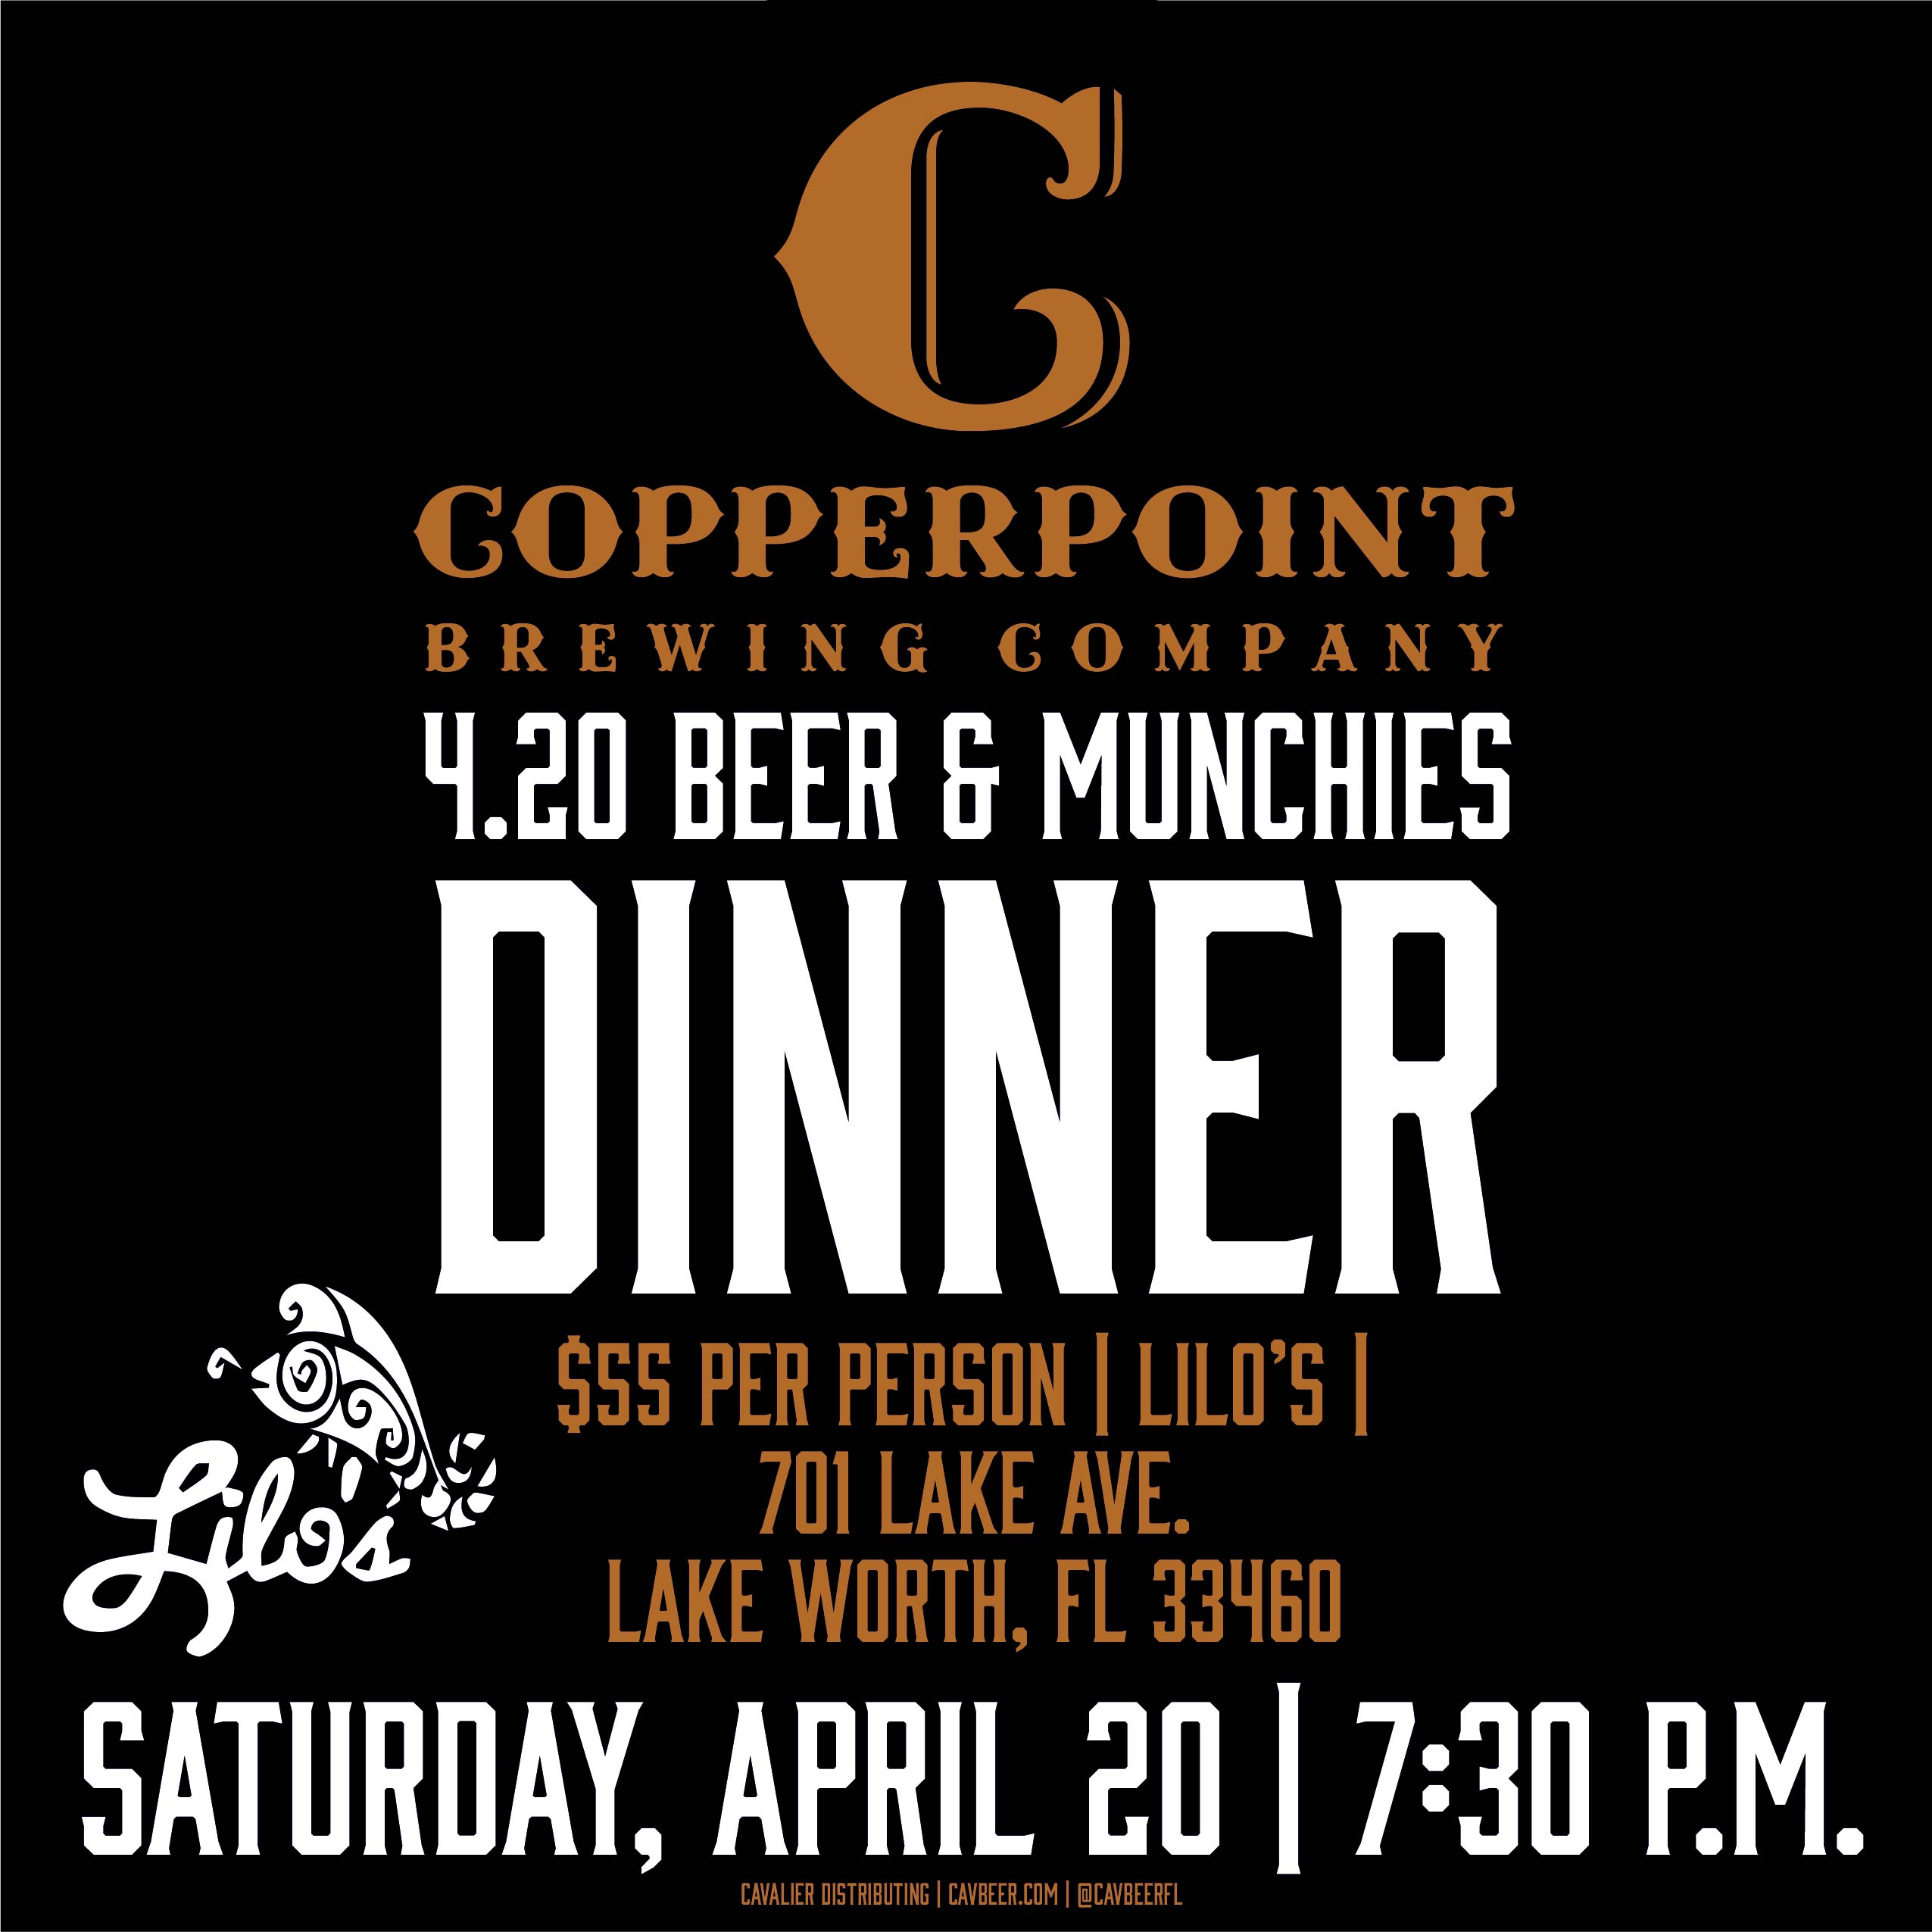 Copperpoint Brewing 4.20 Beer Dinner @ Lilo's